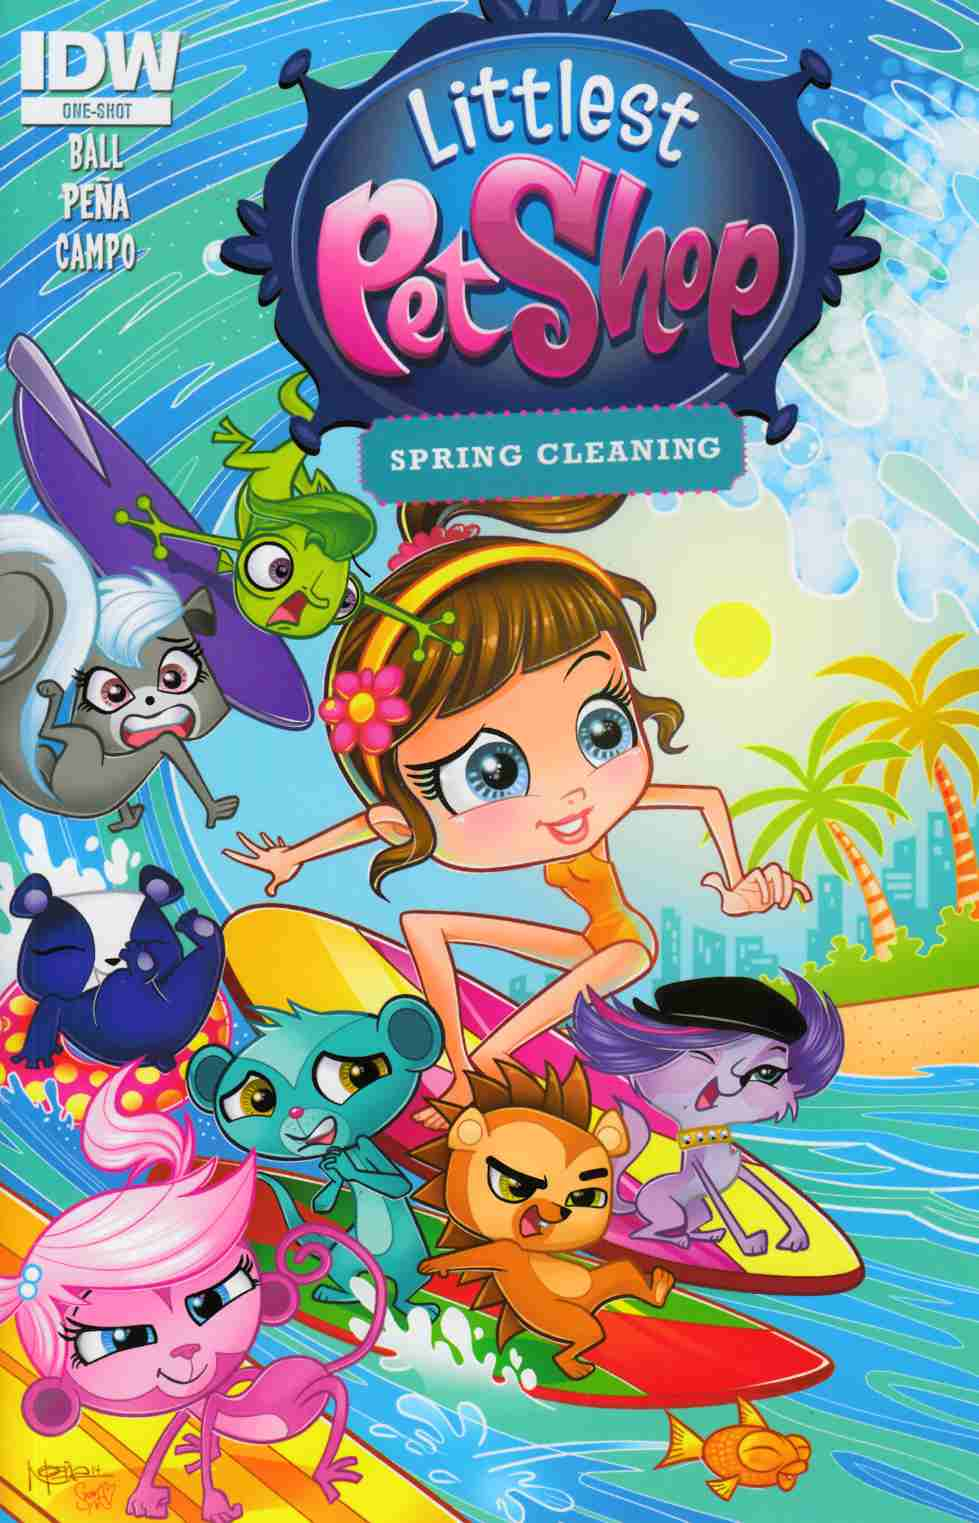 Littlest Pet Shop Spring Cleaning (One Shot) [IDW Comic]